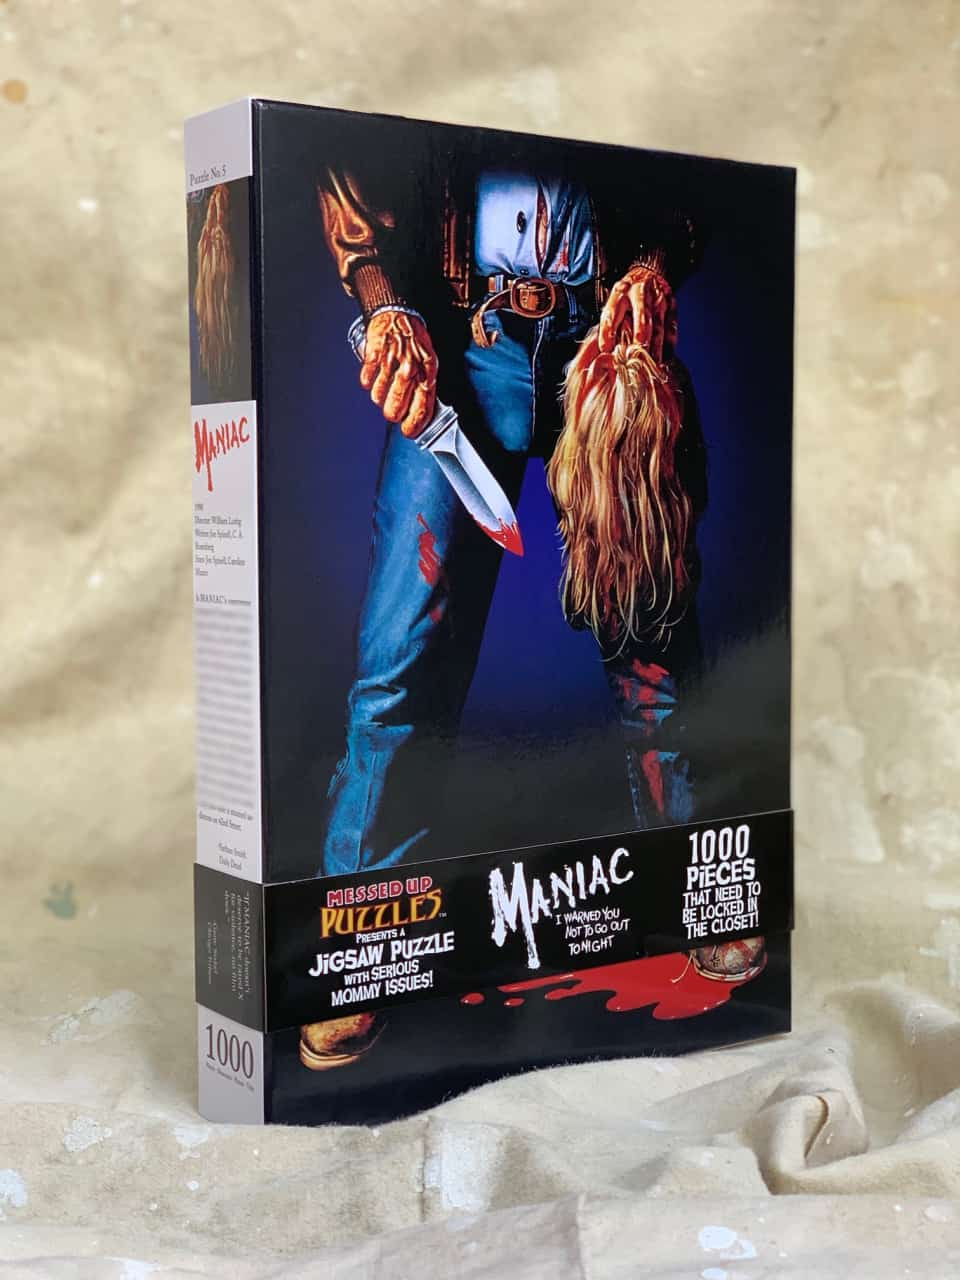 maniacpuzzleboxart - Messed Up Puzzles Announces MANIAC And ZOMBIE Limited Jigsaw Puzzles